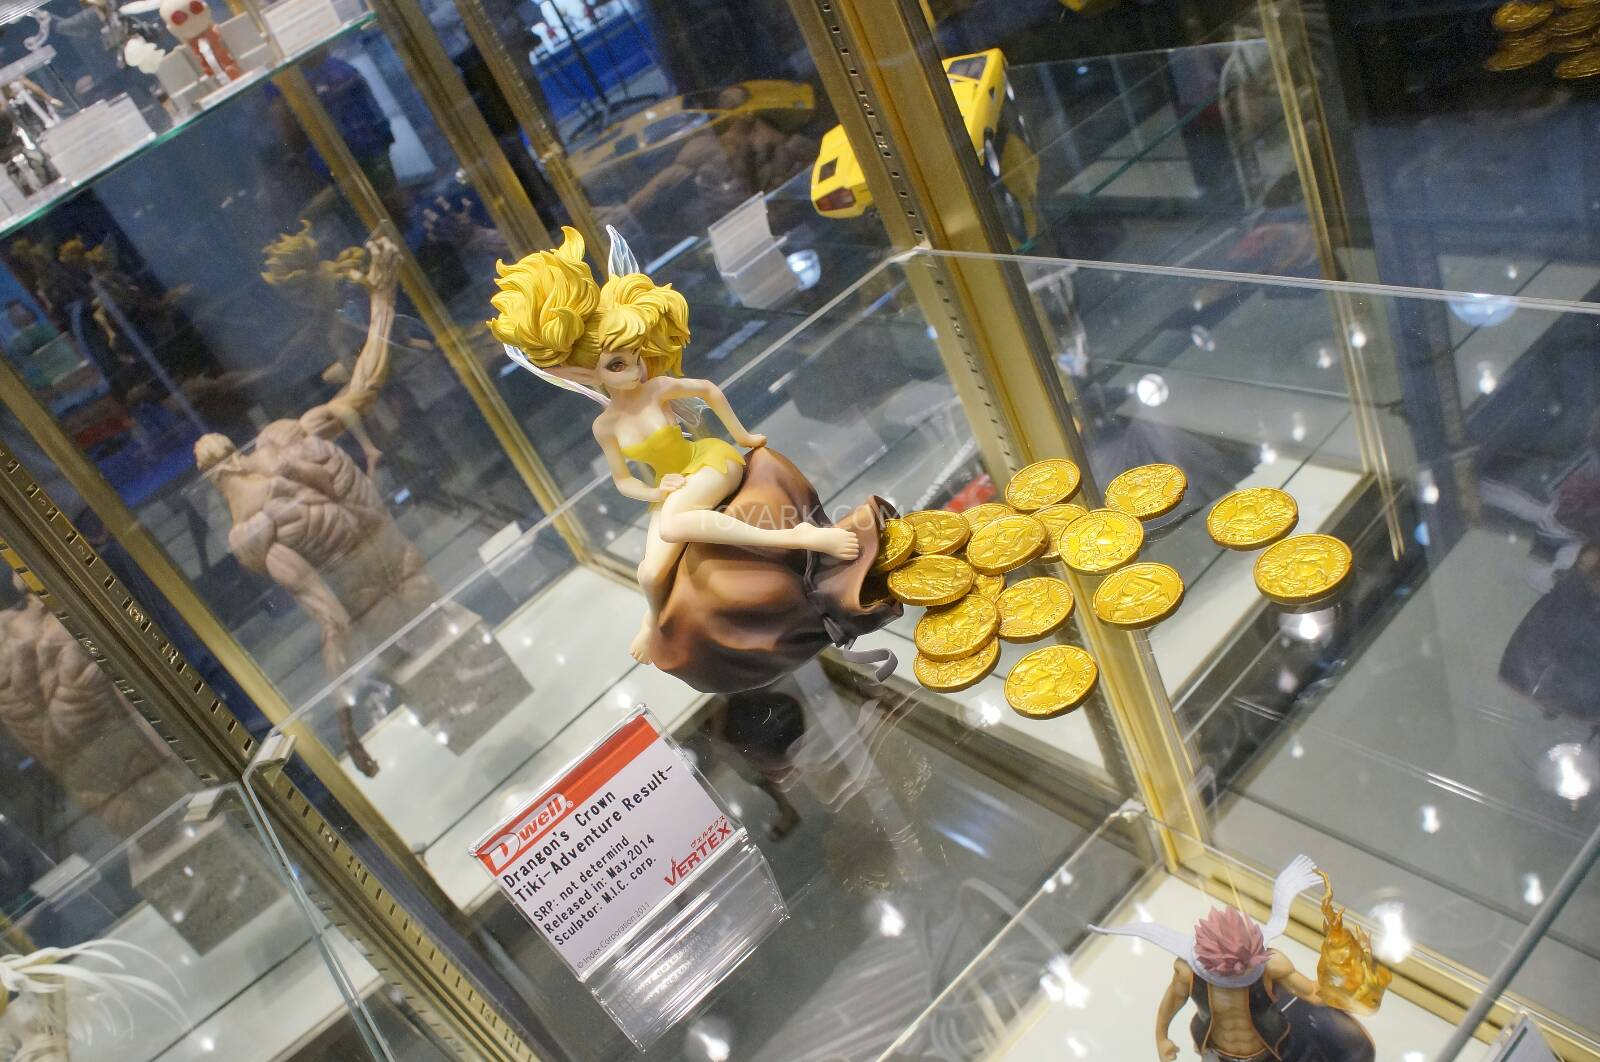 [EVENTO] Toy Fair 2014 - Good Smile Company / Max Factory / Phat Company / FREEing Toy-Fair-2014-Good-Smile-and-Max-Factory-Display-052